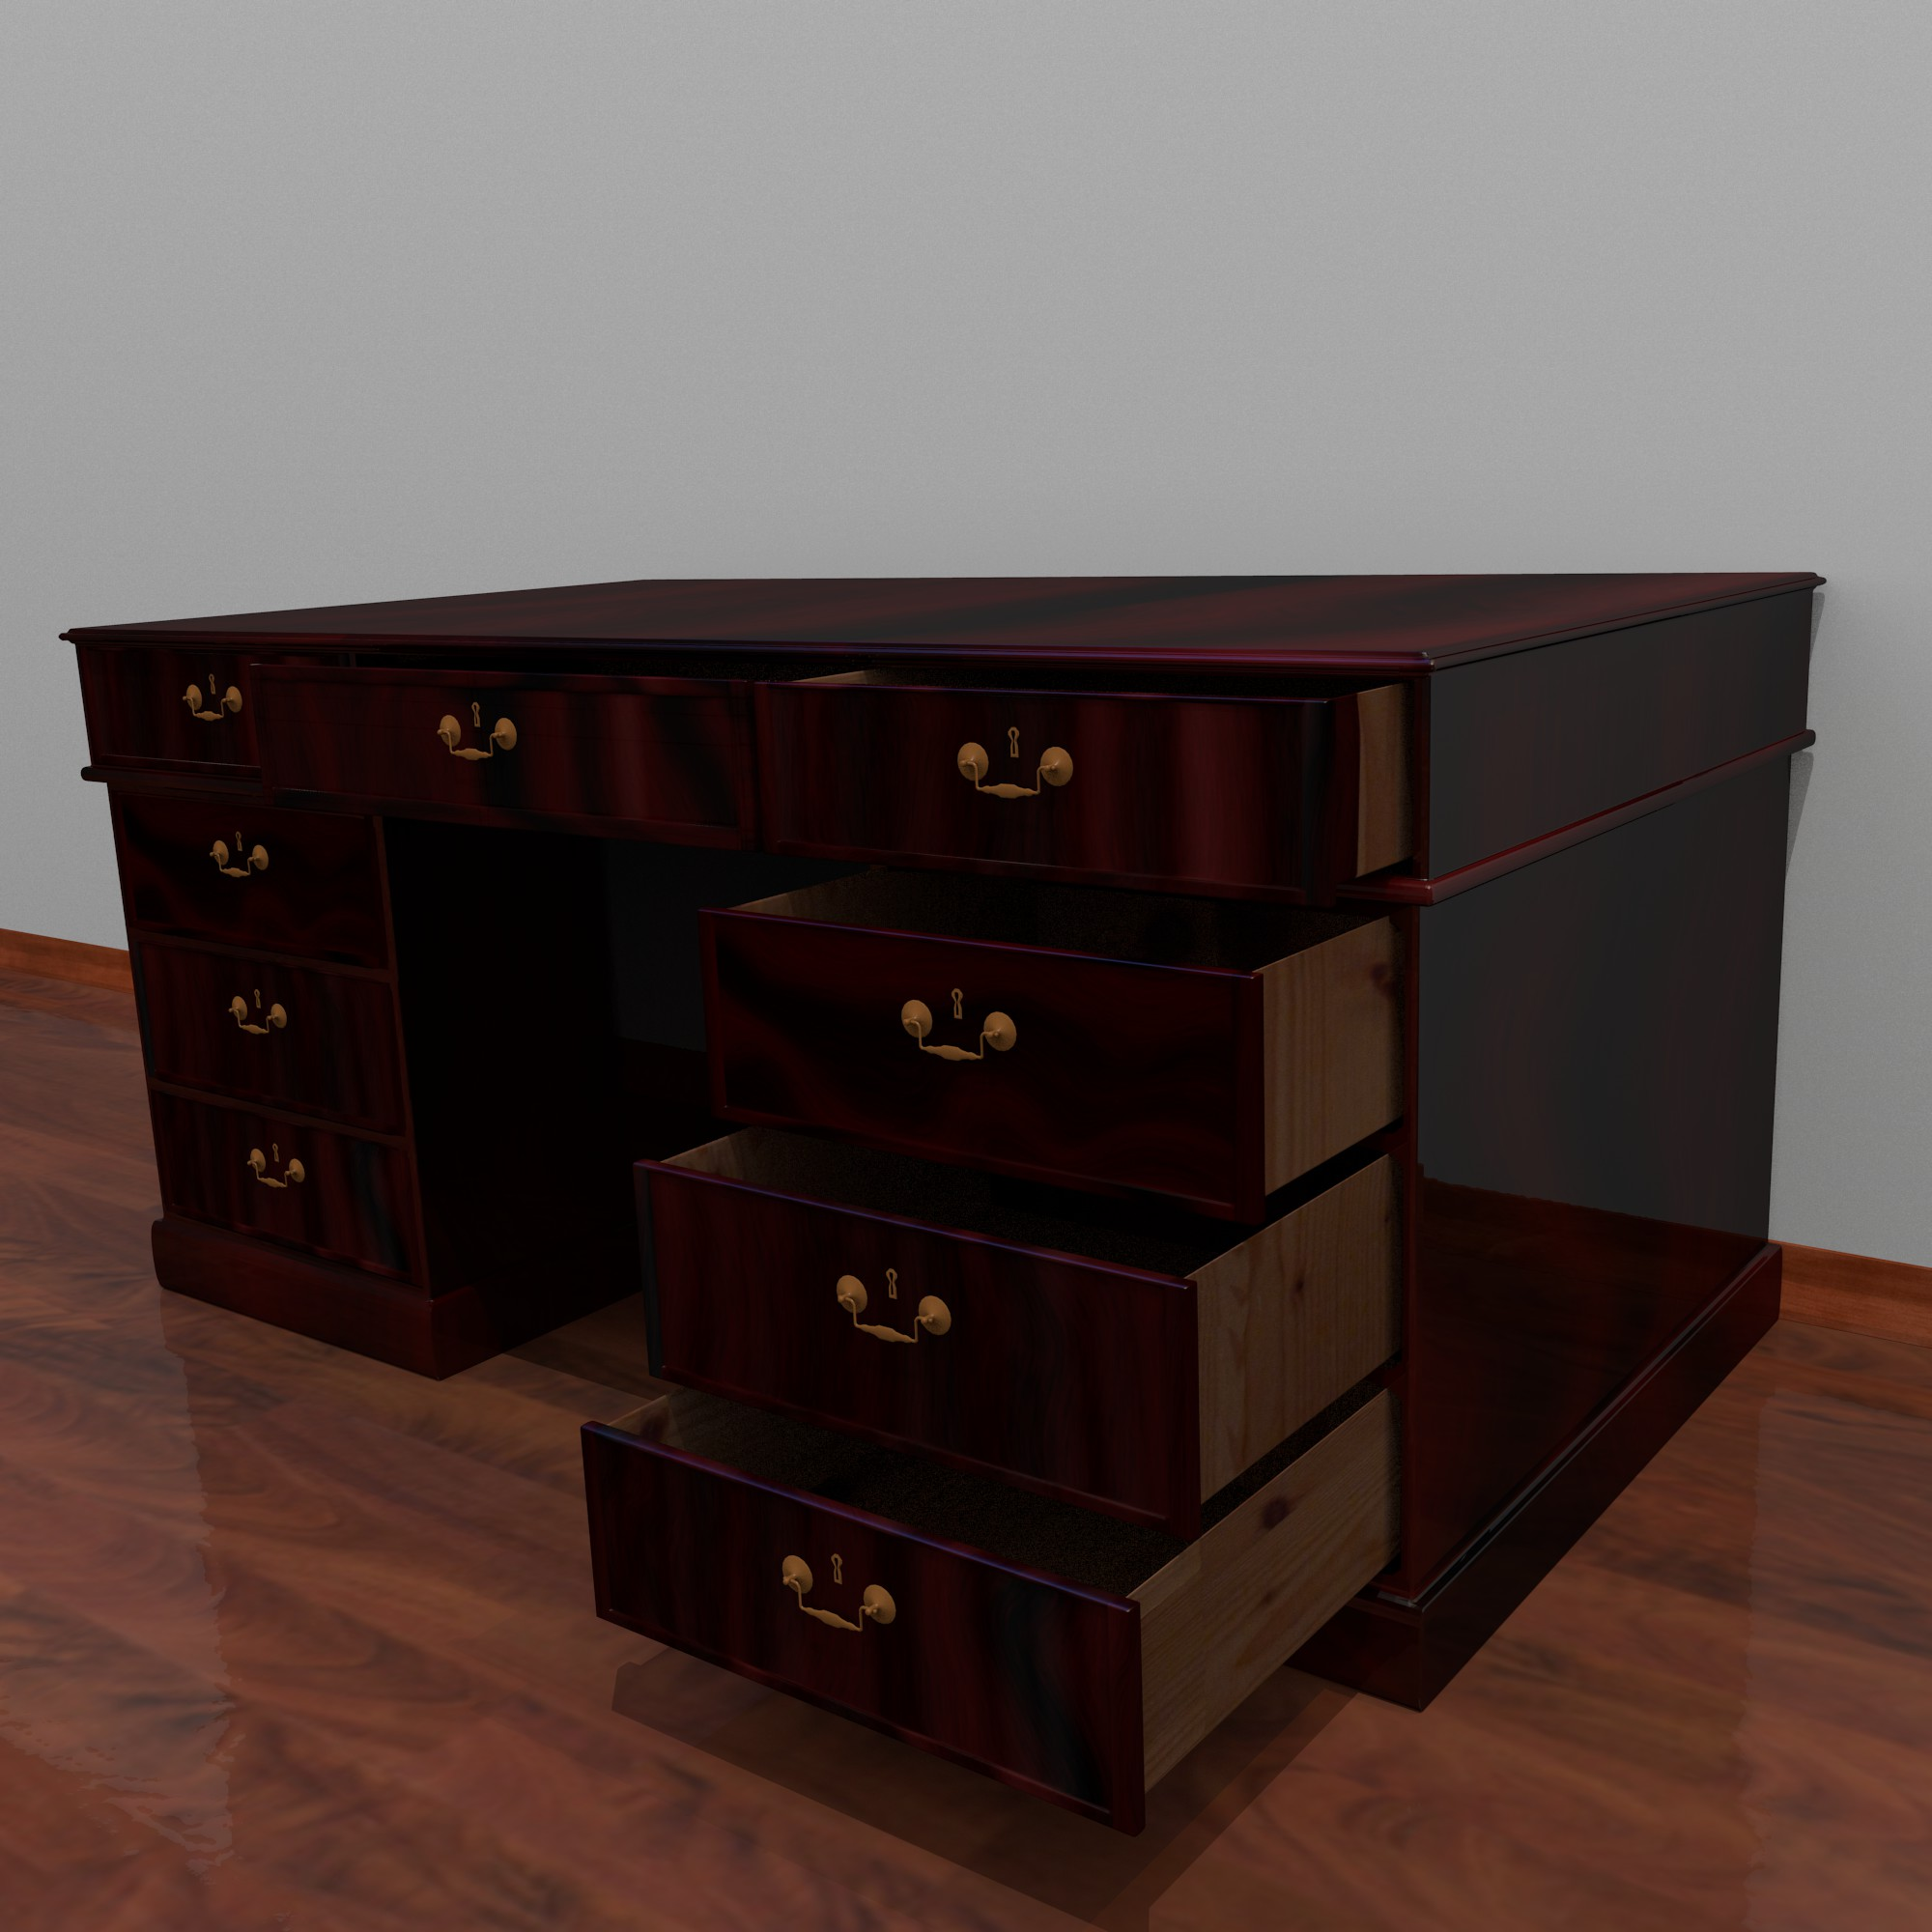 dark wood desk 3d model fbx blend dae obj 117671